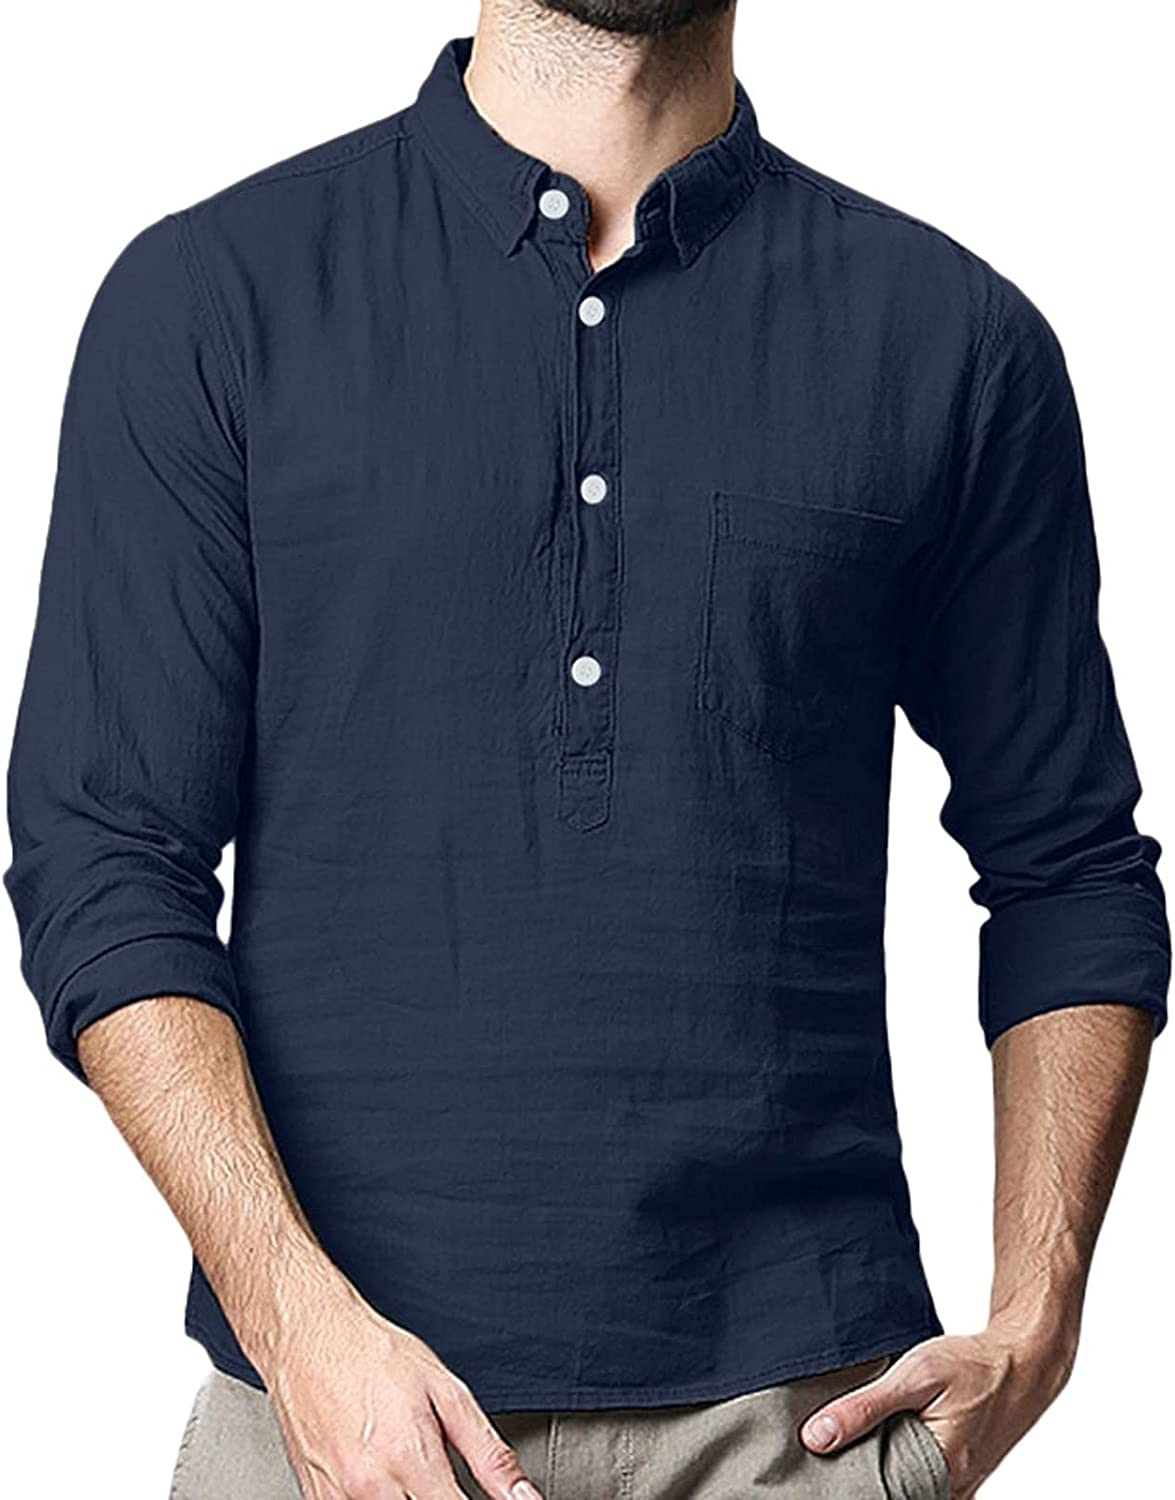 WOCACHI Cotton Linen Henley Shirts for Mens, Button Turn-down Collar Casual Shirt Comfy T-shirts with Front Pocket